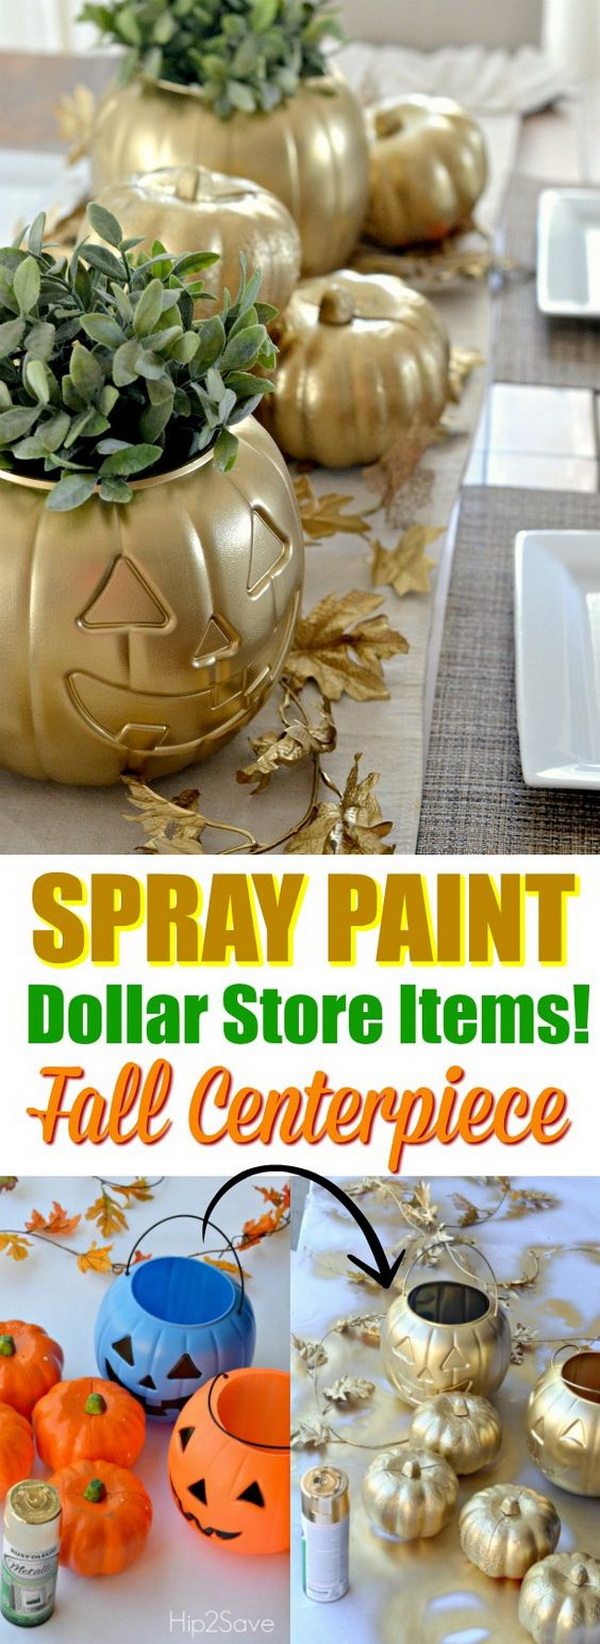 Dollar Store Pumpkin Decoration. Transform a dollar store pumpkin into this stunning fall or halloween decor project with spray paint!